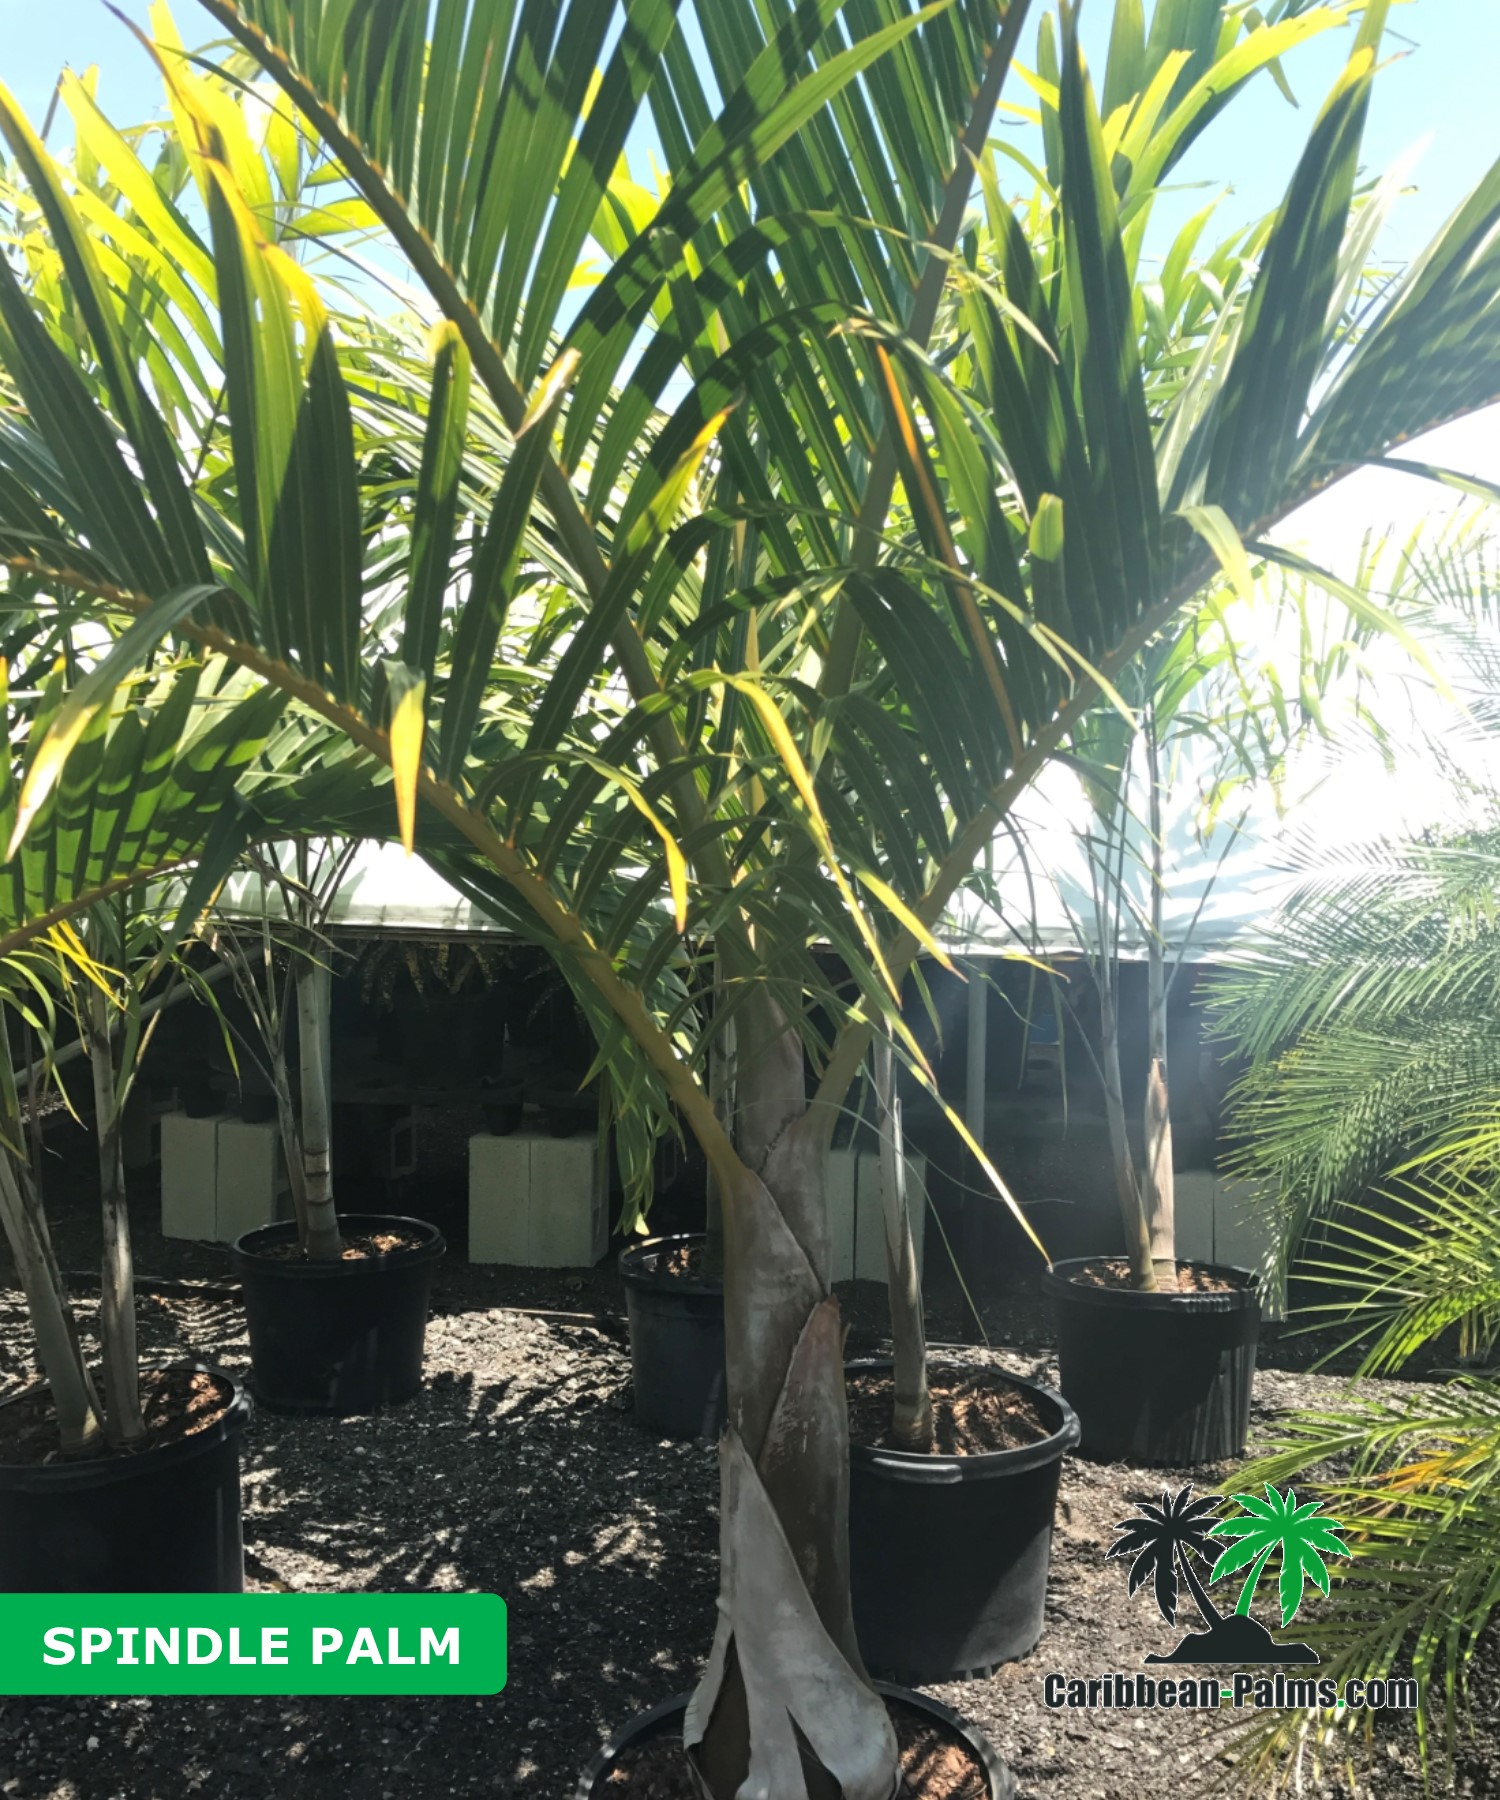 SPINDLE PALM